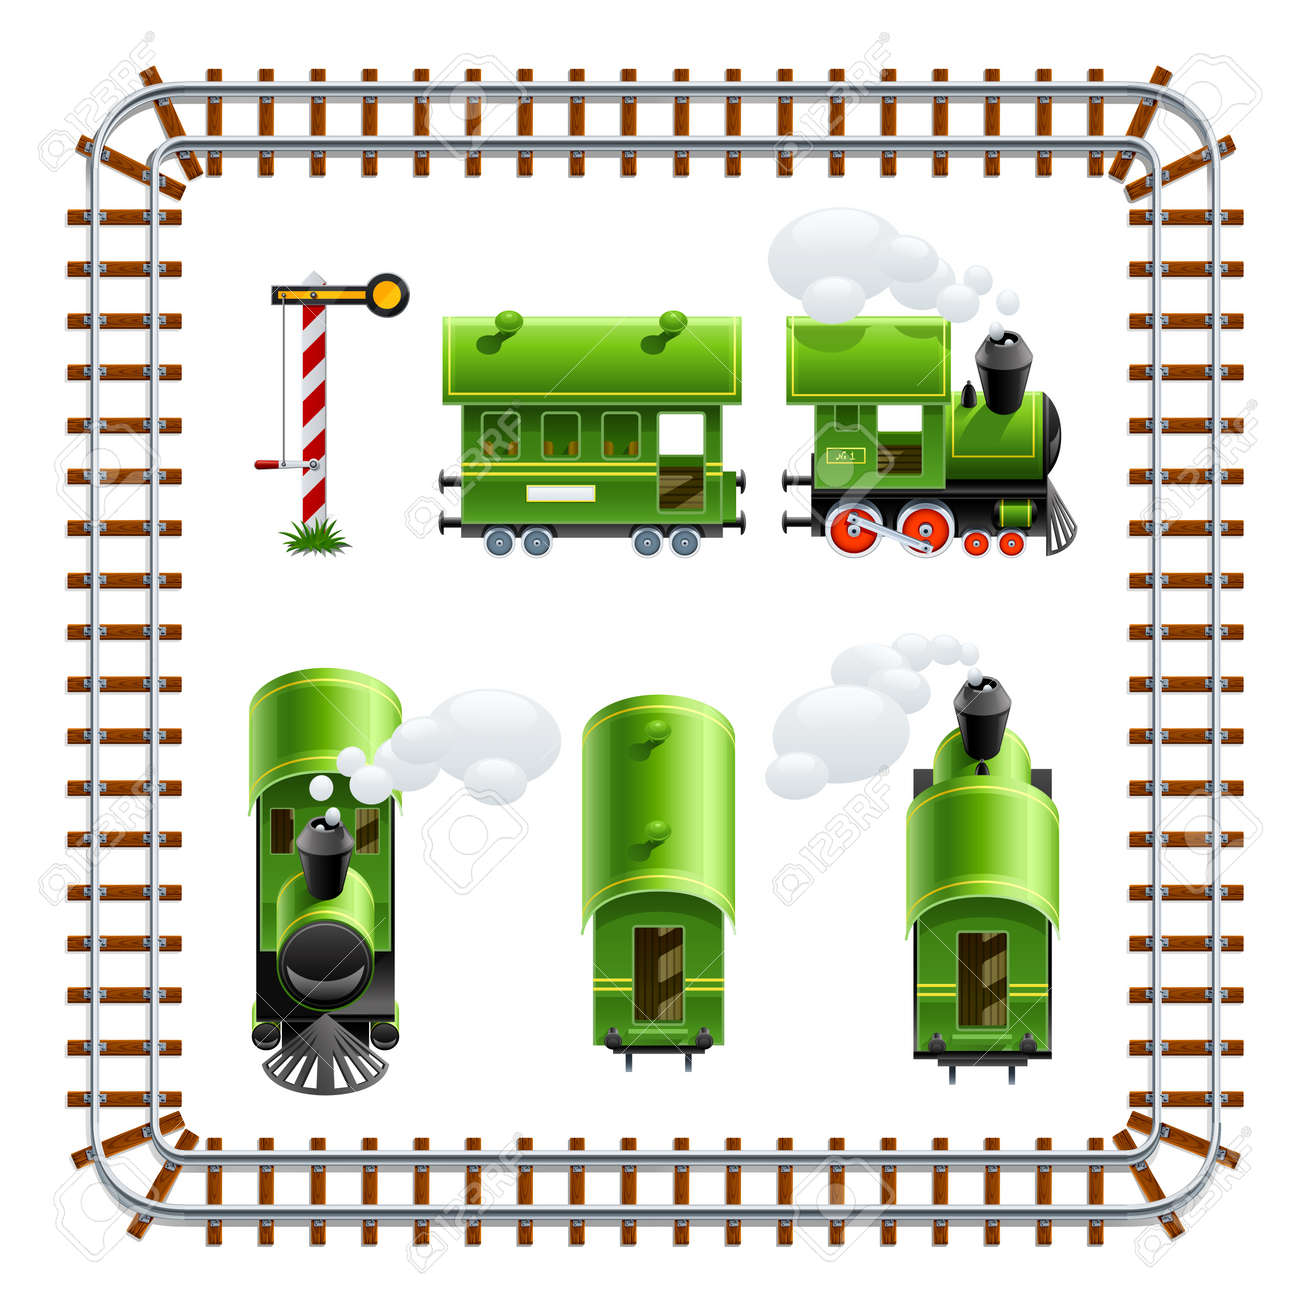 green vintage locomotive with coach set vector illustration isolated on white background Stock Vector - 11174188